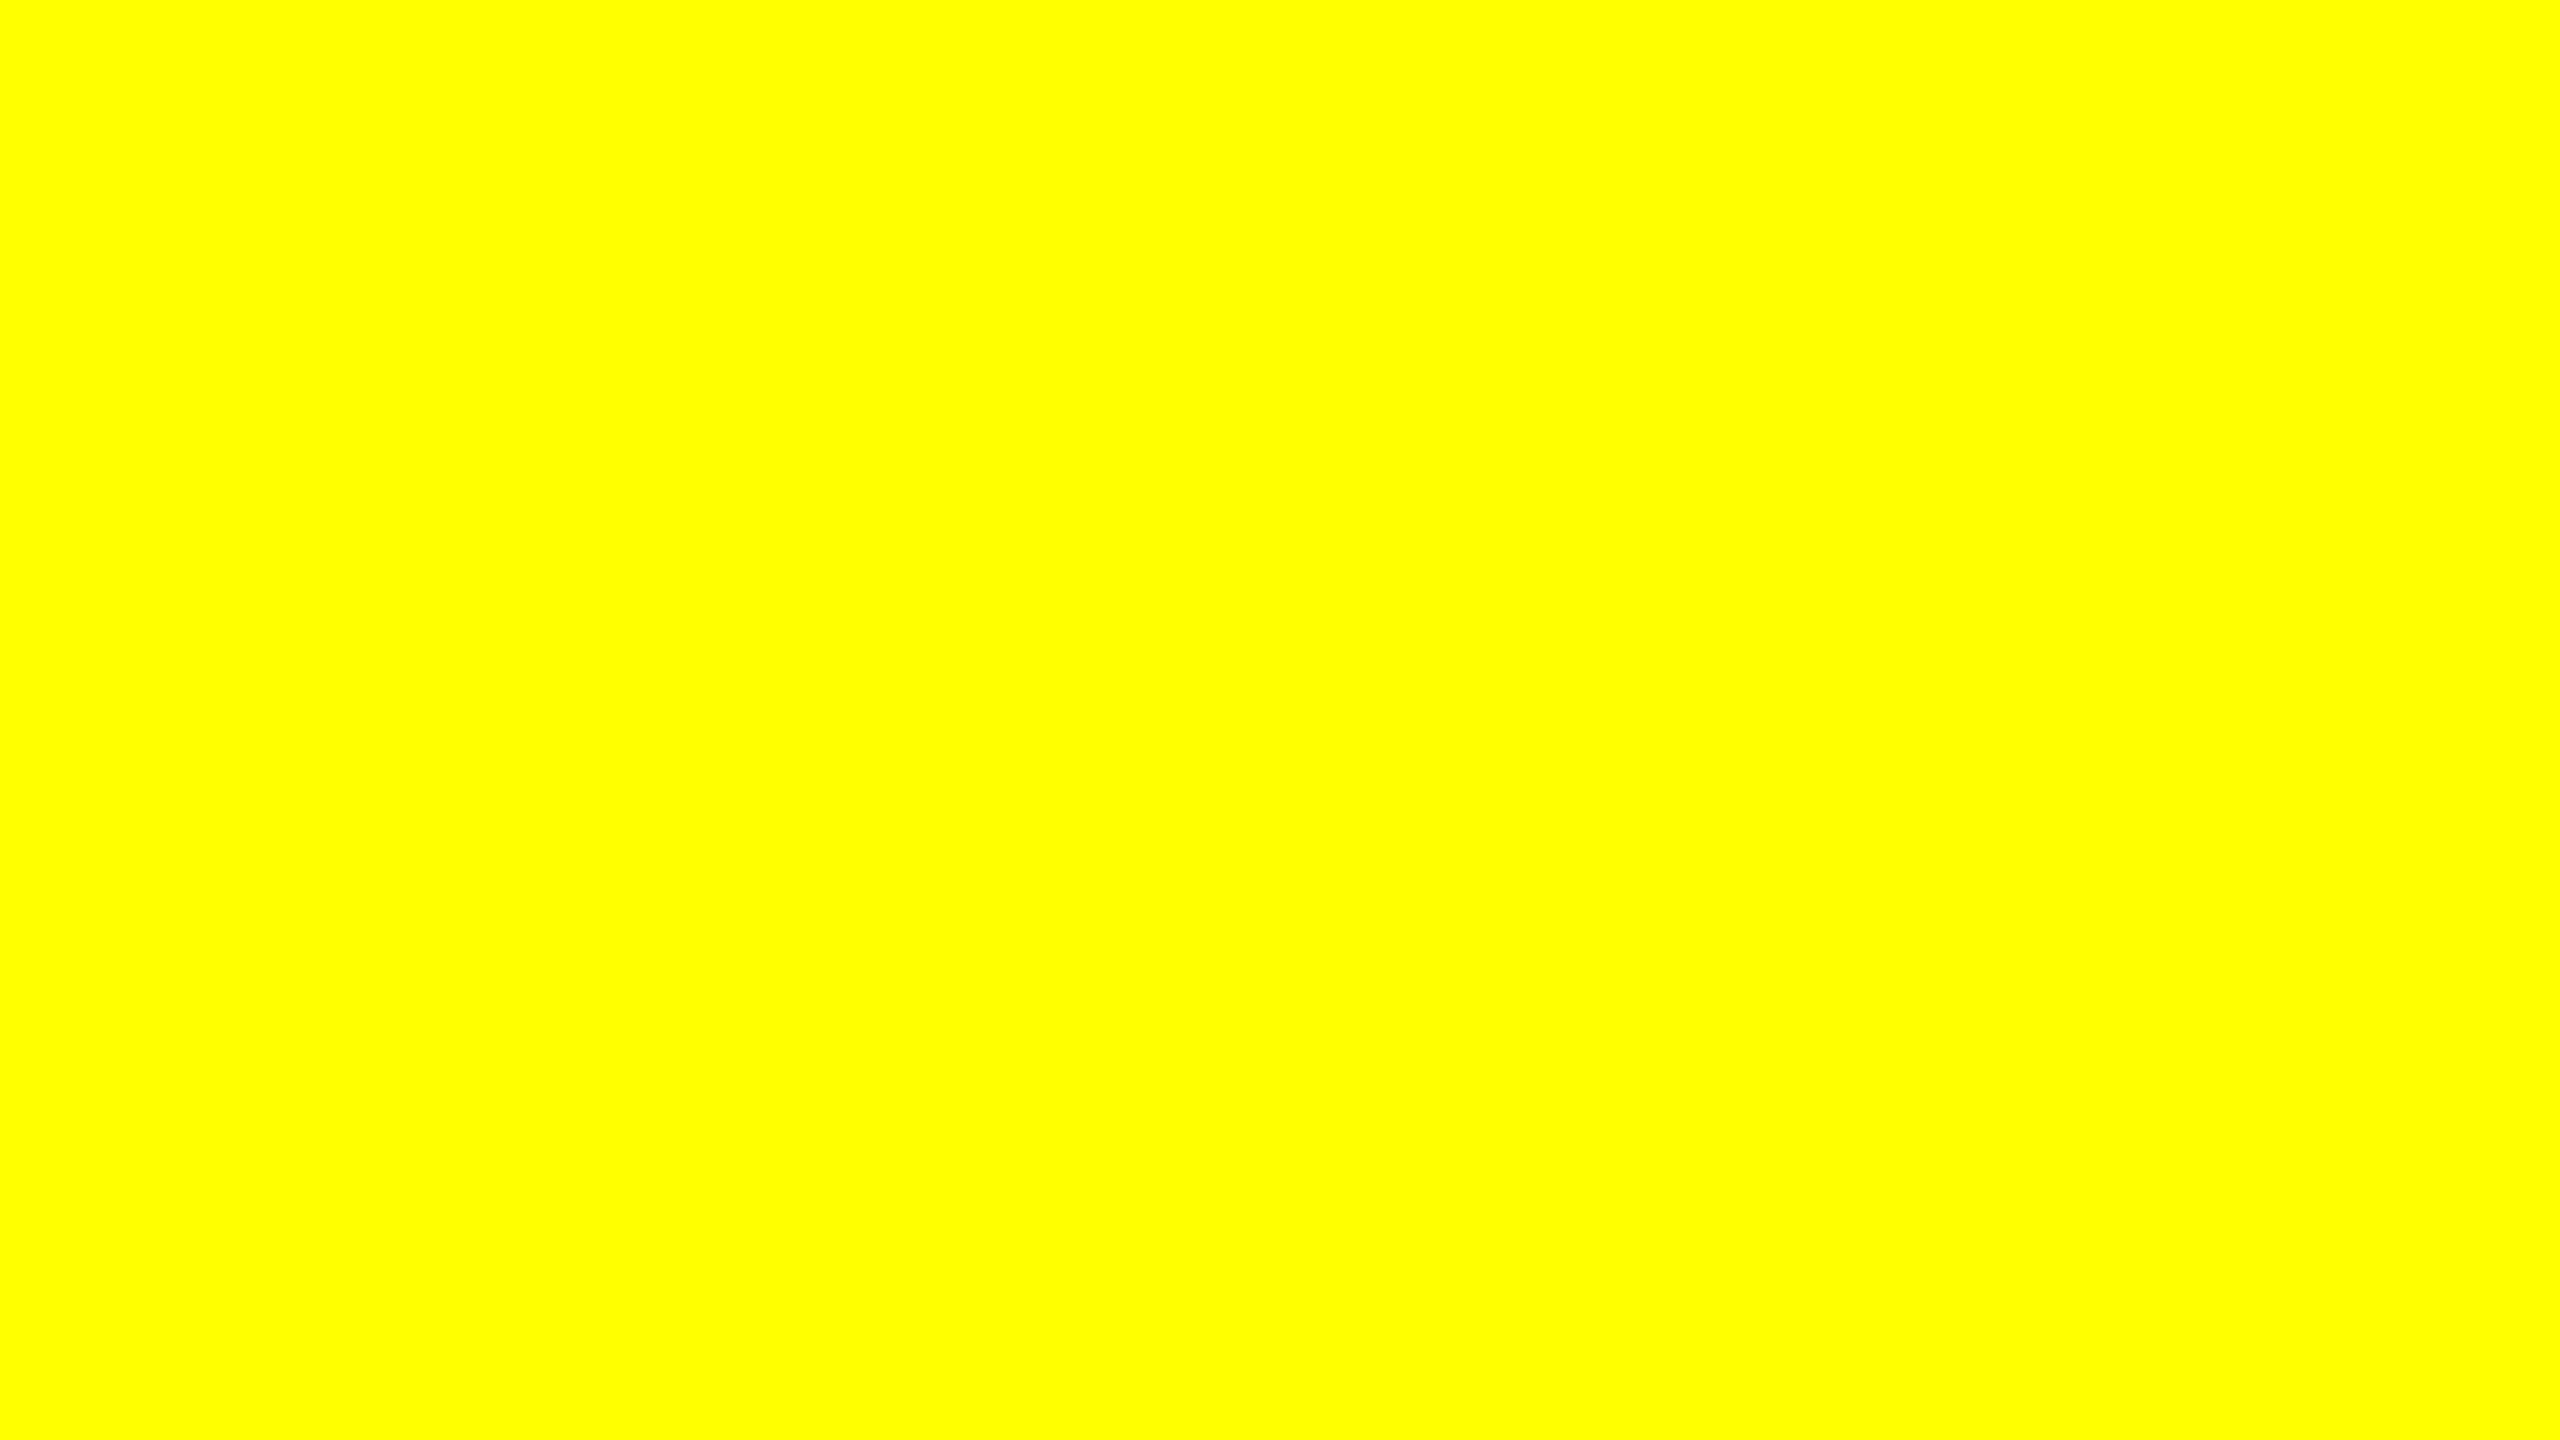 Images For > Hd Backgrounds Yellow